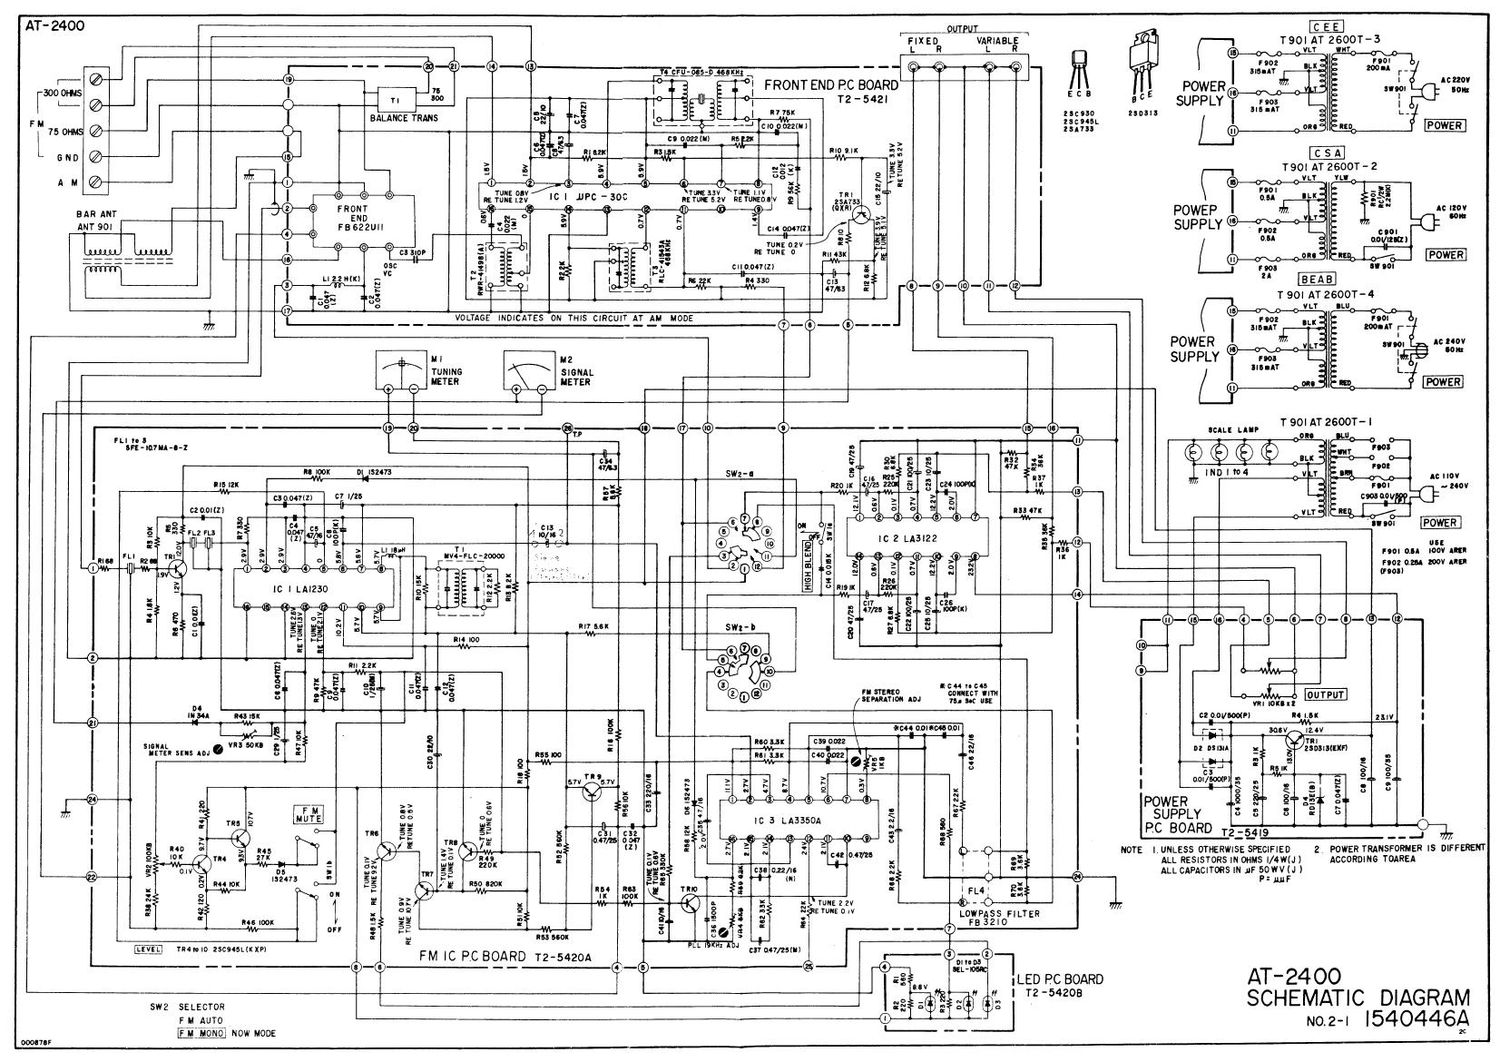 Akai AT 2400 Schematic